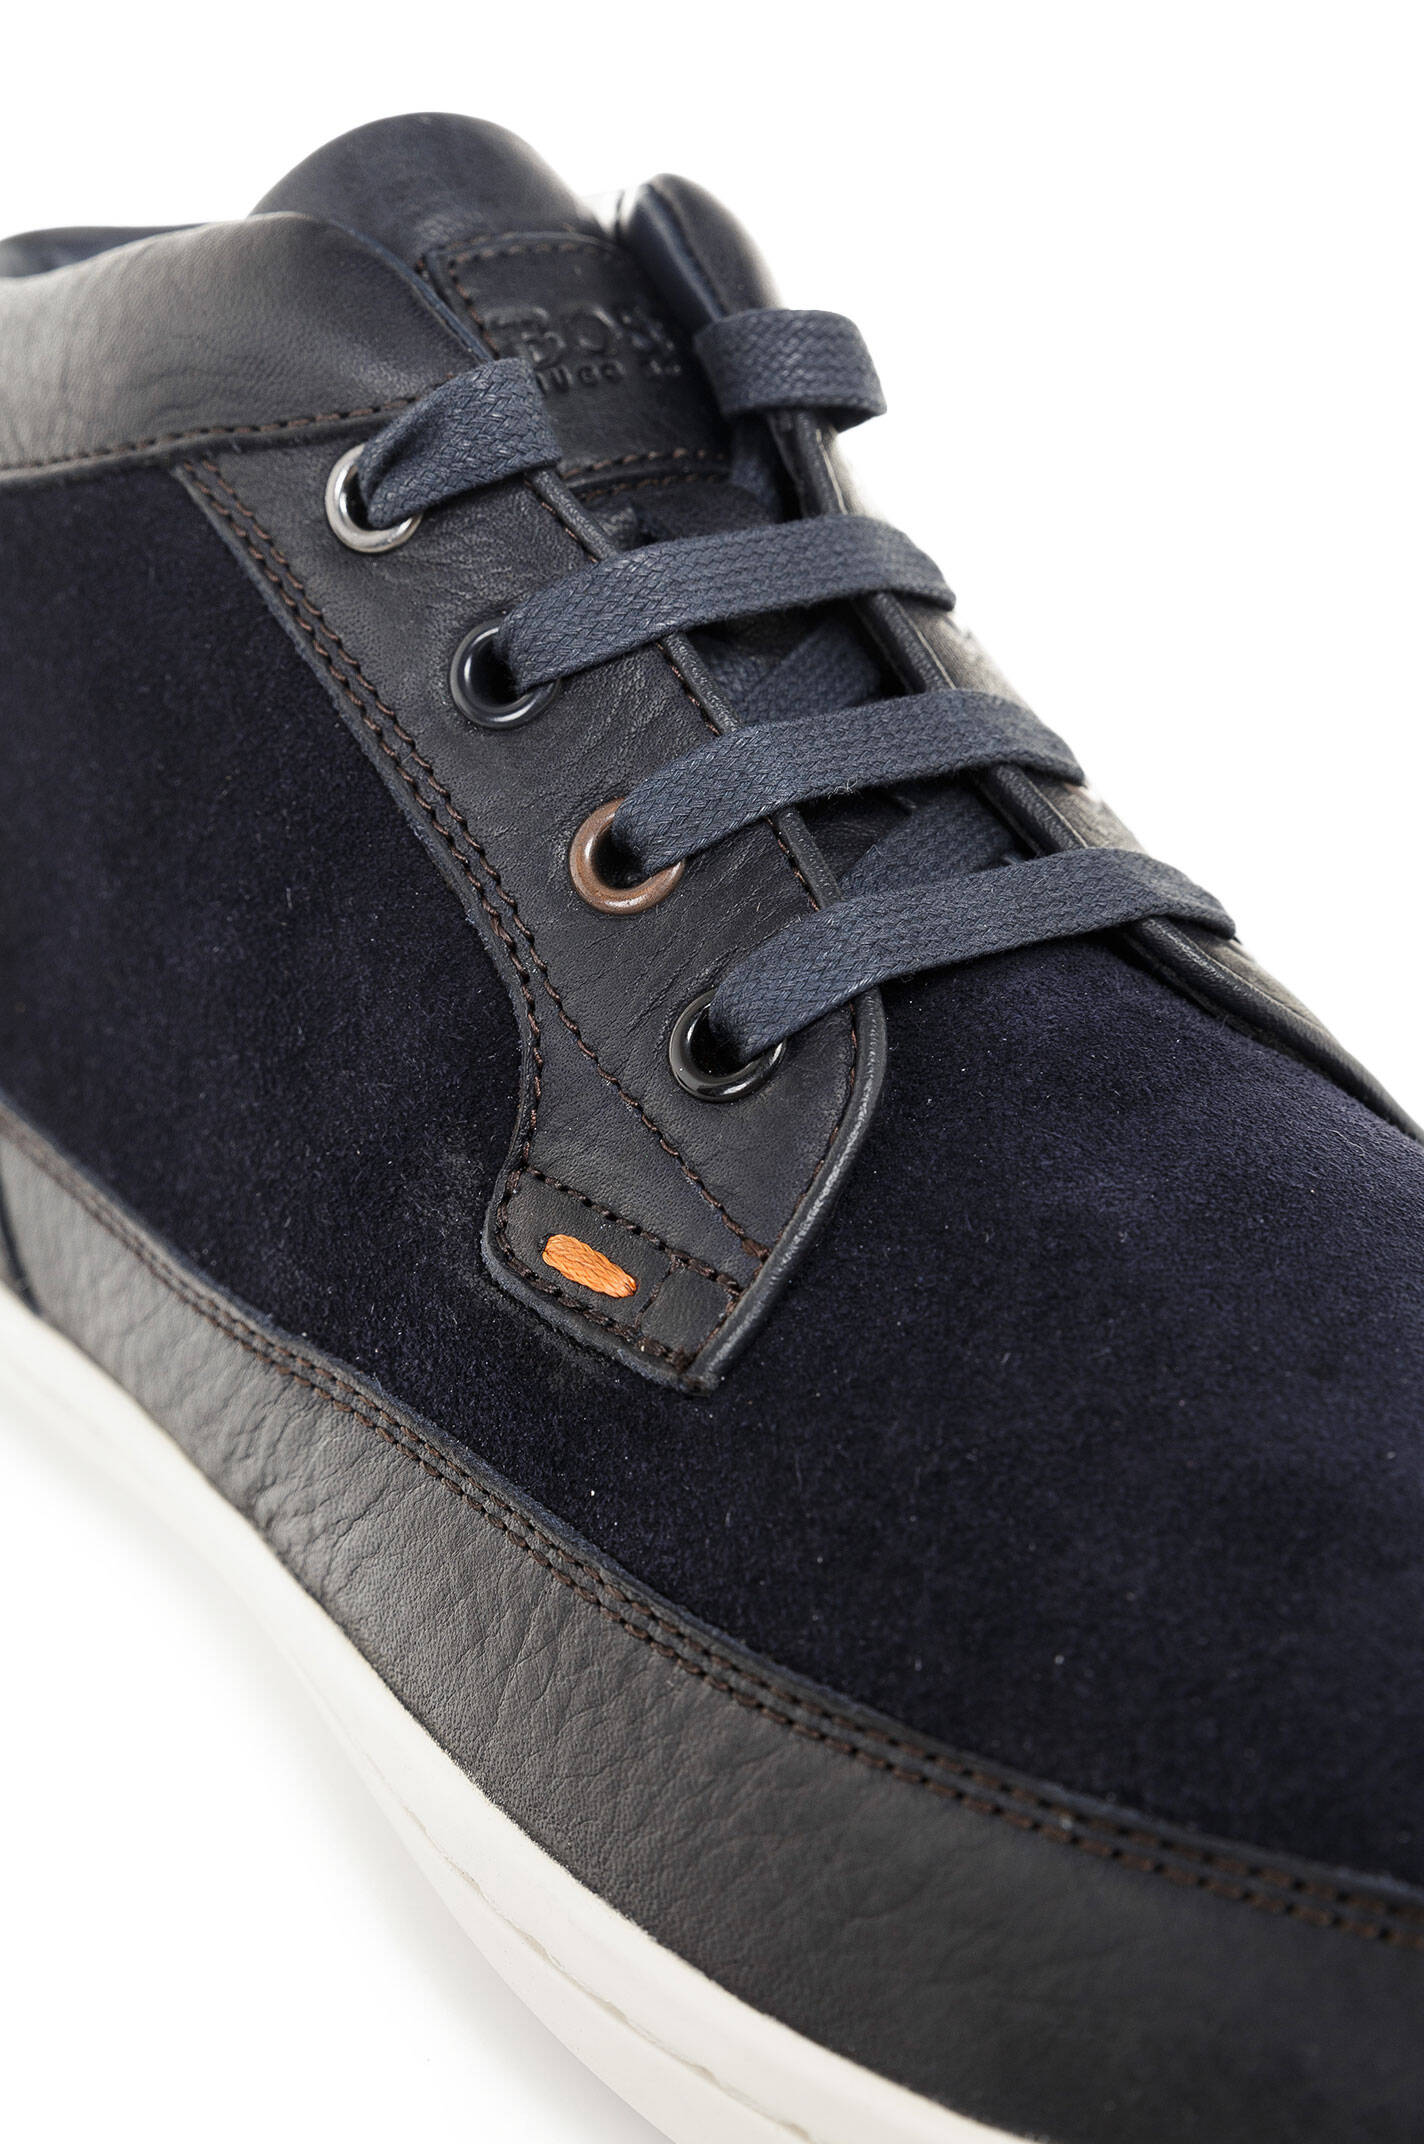 soundcarrel sneakers boss orange navy blue sneakers. Black Bedroom Furniture Sets. Home Design Ideas